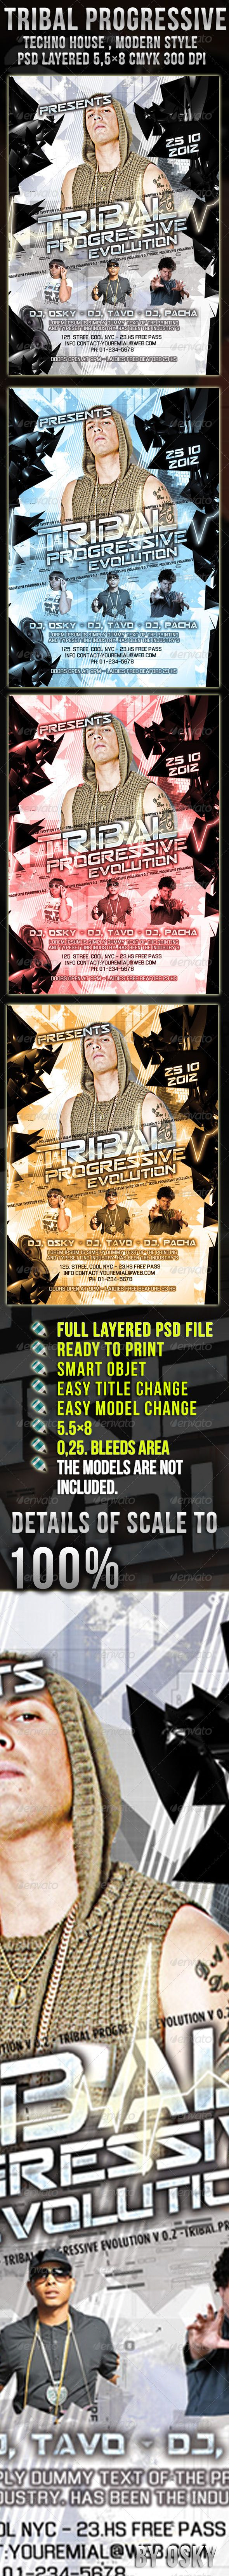 """Tribal Progressive Flyer  #GraphicRiver        Tribal Progressive Flyer    5.5×8 inches   psd files   300 dpi CMYK    0.25 bleed area,   Easy model Photo Replacement, SMART OBJET    4 style adjust theme color   PSD organised in layers """"named""""  Fonts Used Are     Enigmatic   Seperated   All Fonts, free in  .dafont     IMPORTANT     for online help   MSN , oscarfrugoni@hotmail    assists and questions   The models are not included   Please Check my  PORFOLIO    ON LINE HELP    MSN…"""